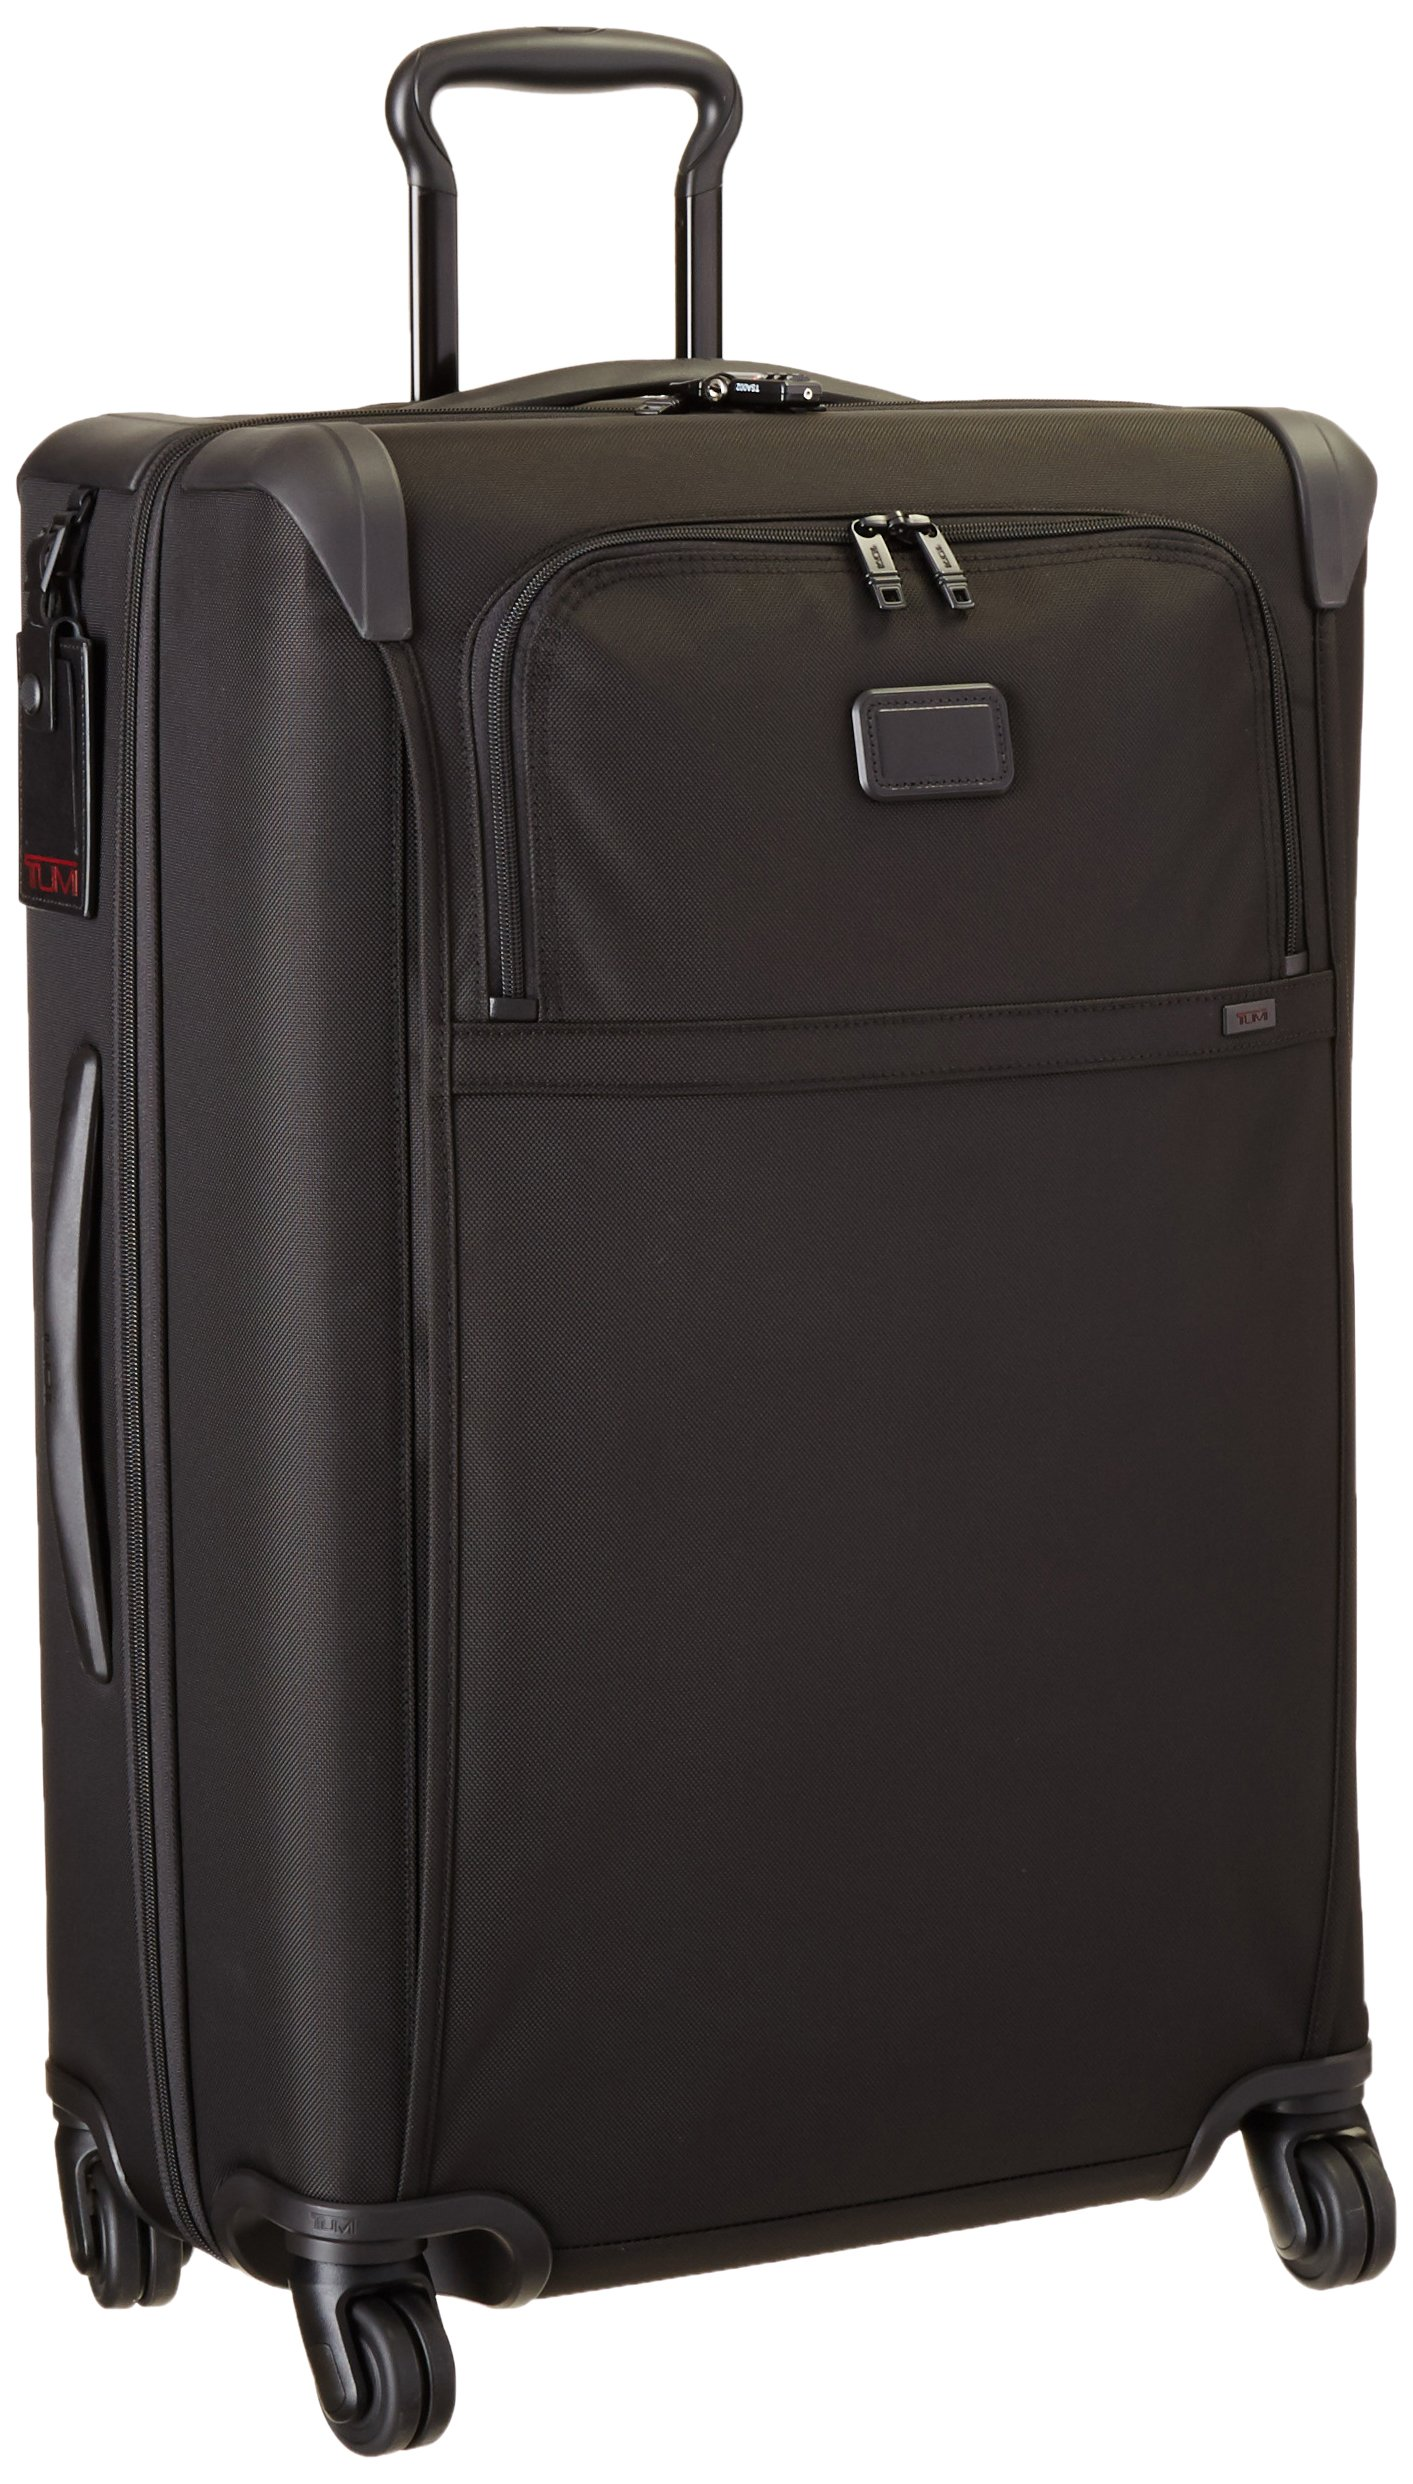 Tumi Alpha 2 Lightweight Medium Trip 4 Wheel Packing Case, Black, One Size by Tumi